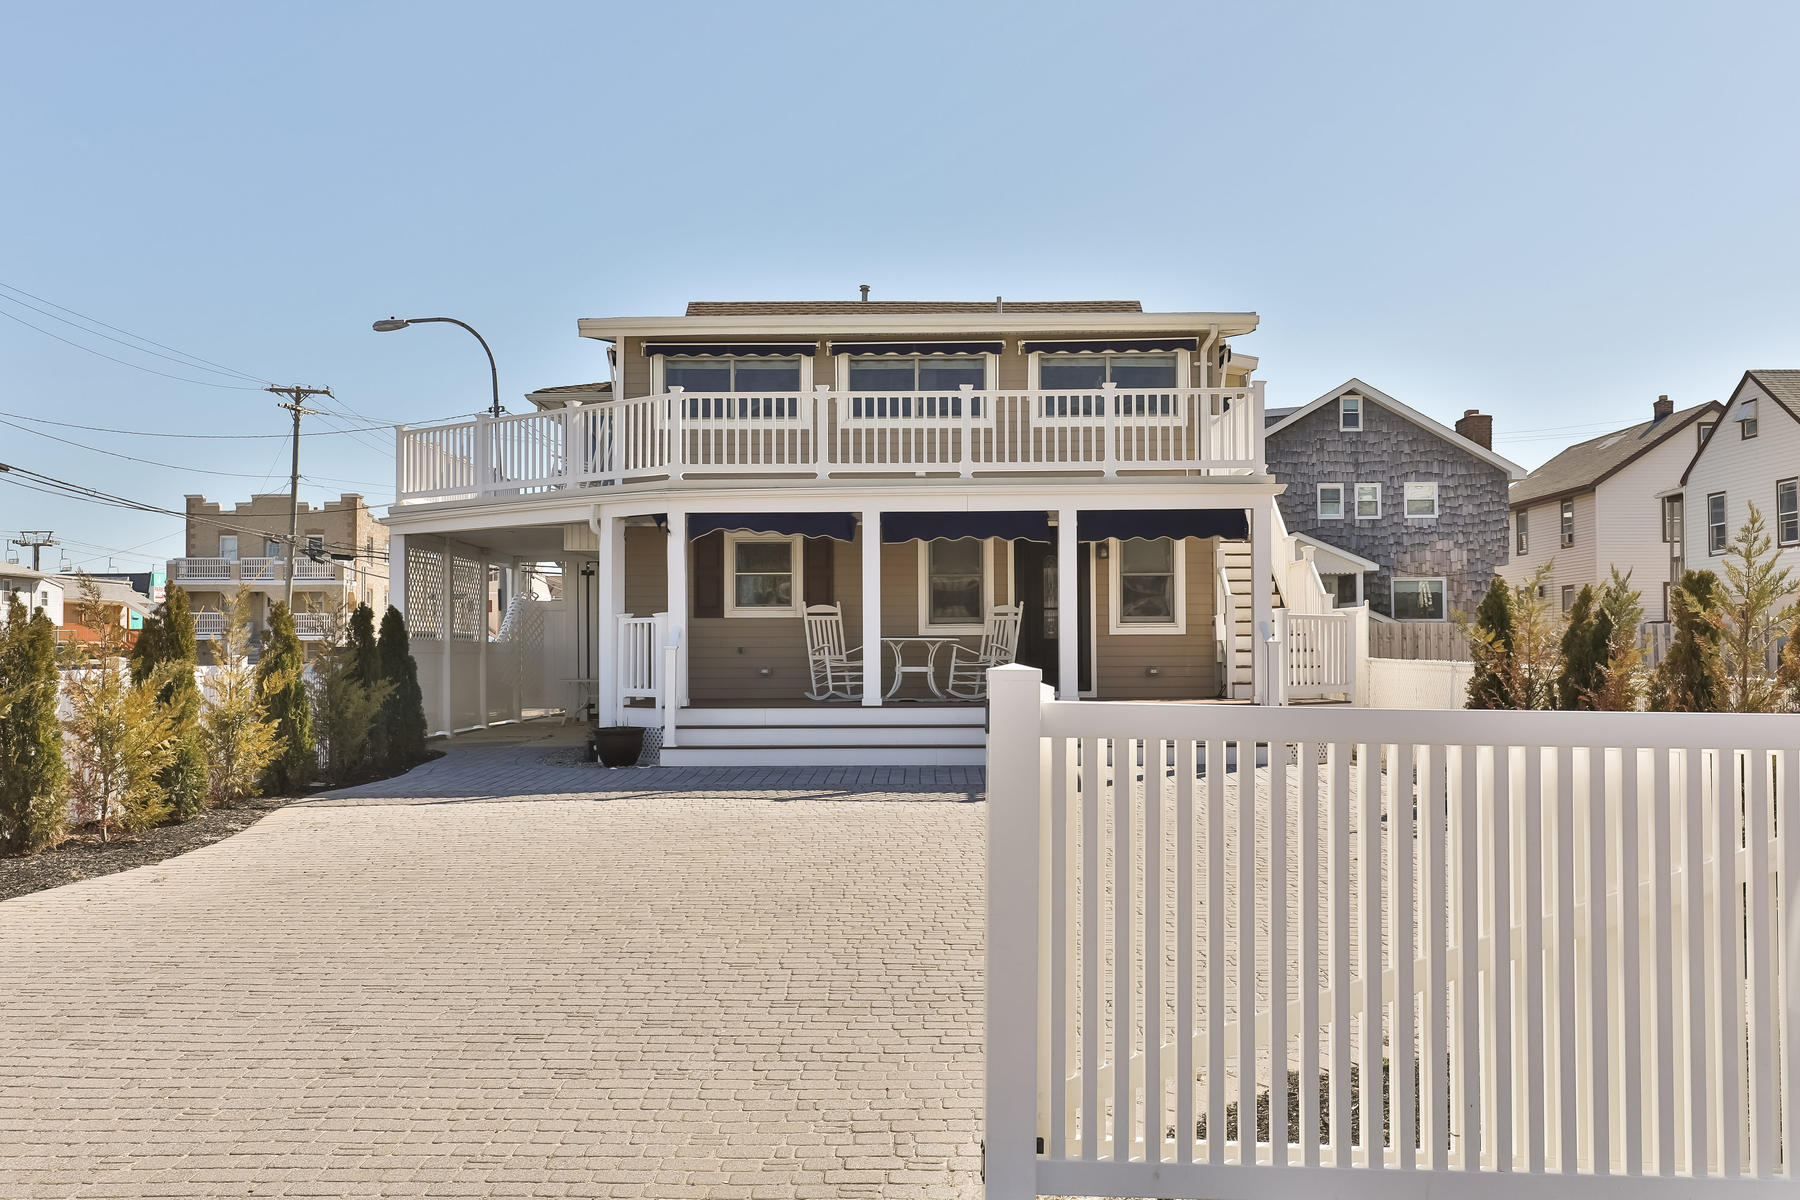 Single Family Home for Sale at Panoramic Ocean Views 17 Sampson Avenue Seaside Heights, 08751 United States